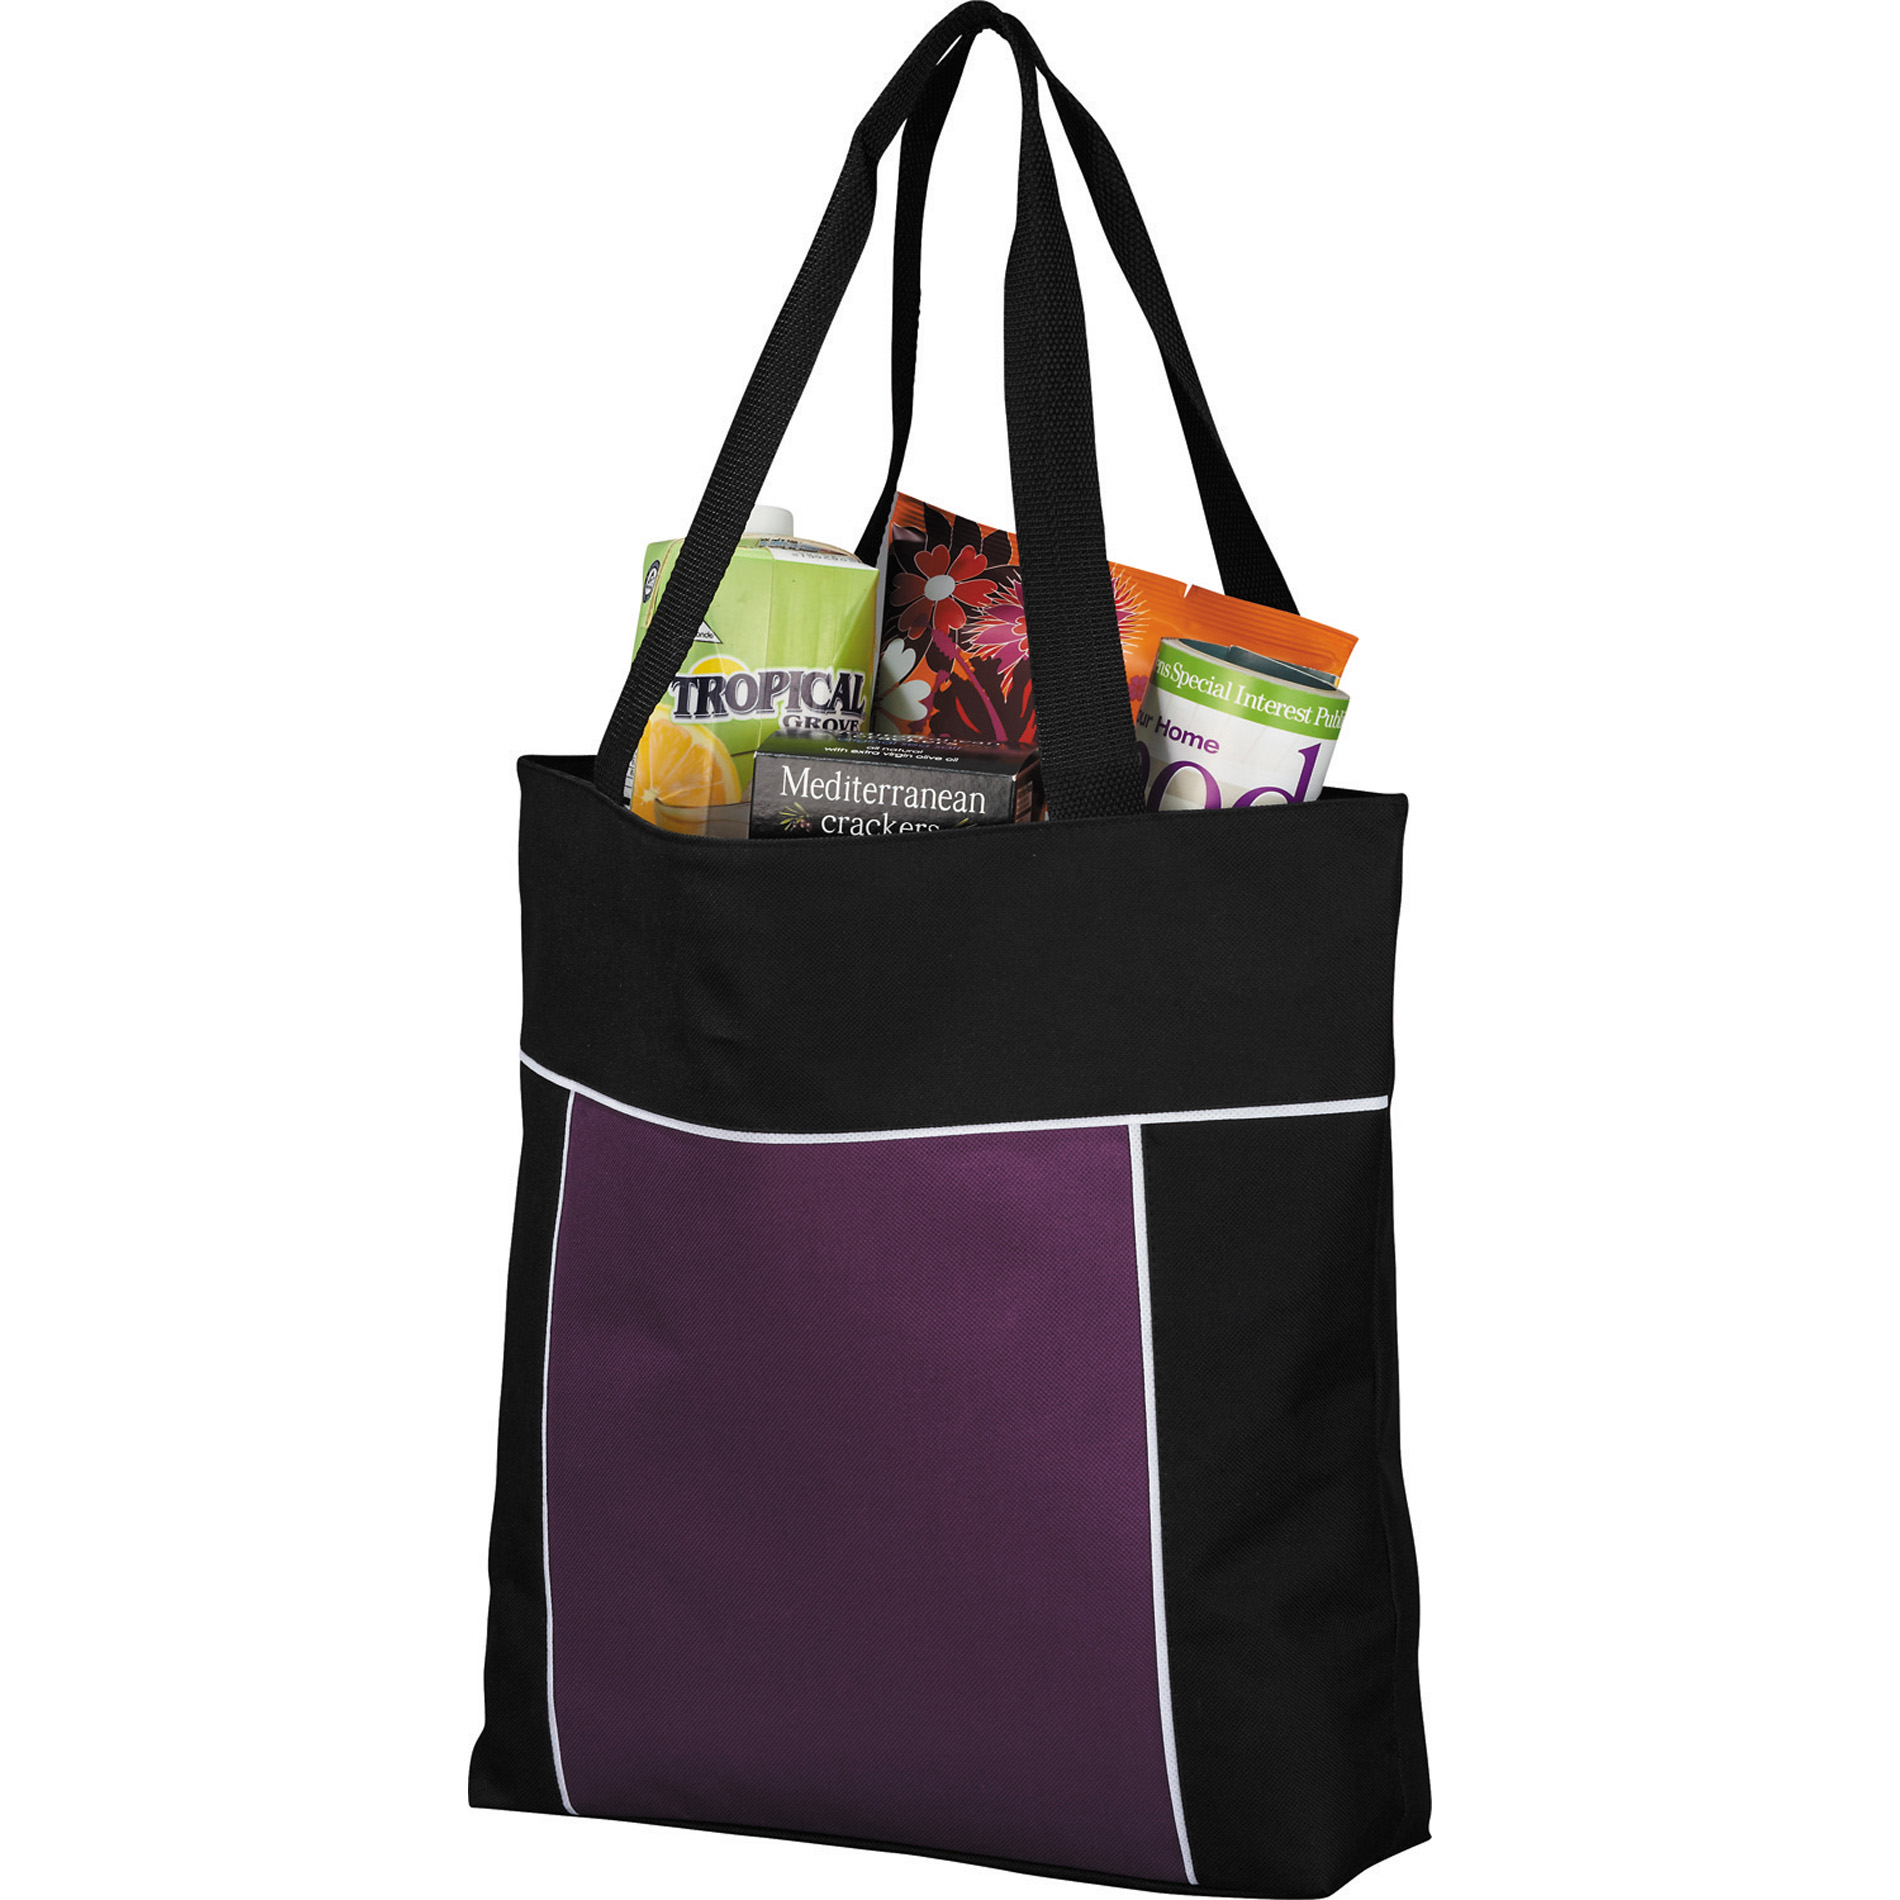 The Broadway Business Tote